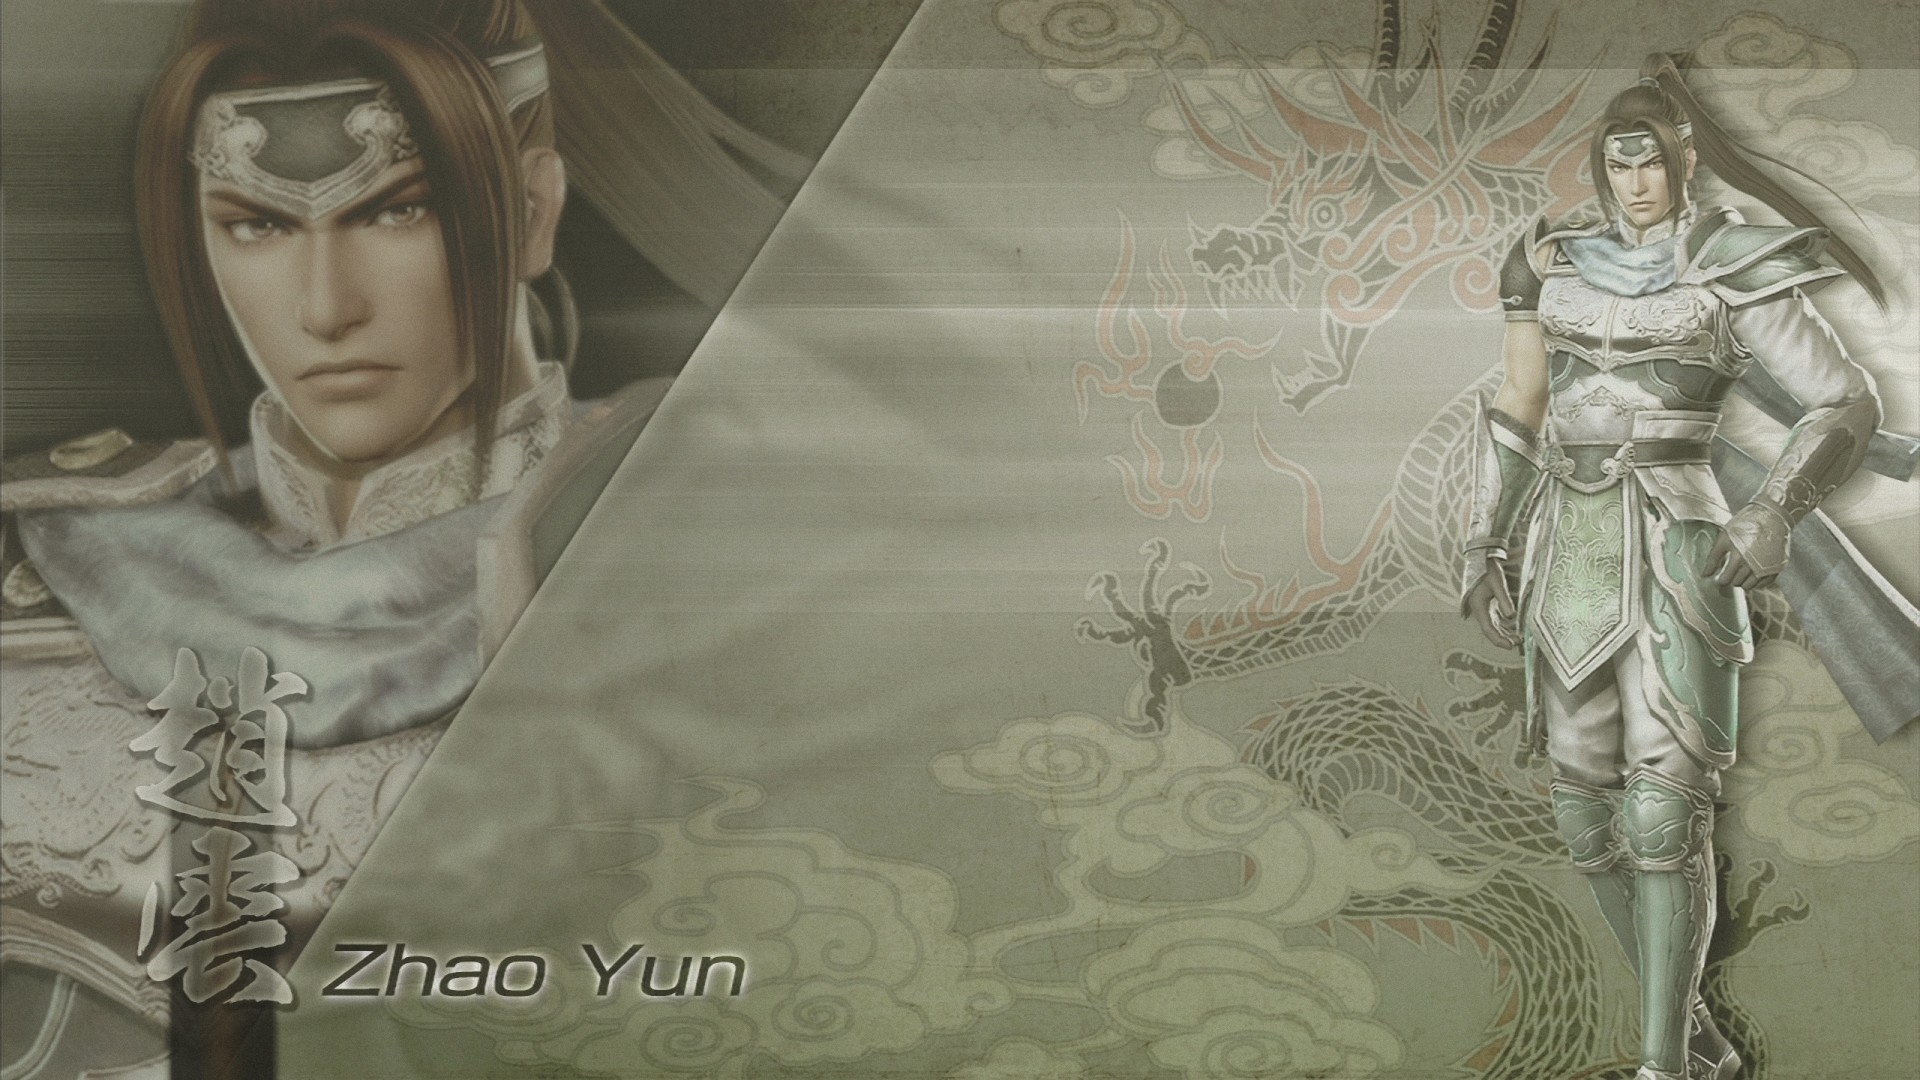 1920x1080 Ling Tong-Dynasty Warriors images Dynasty Warriors HD wallpaper and  background photos